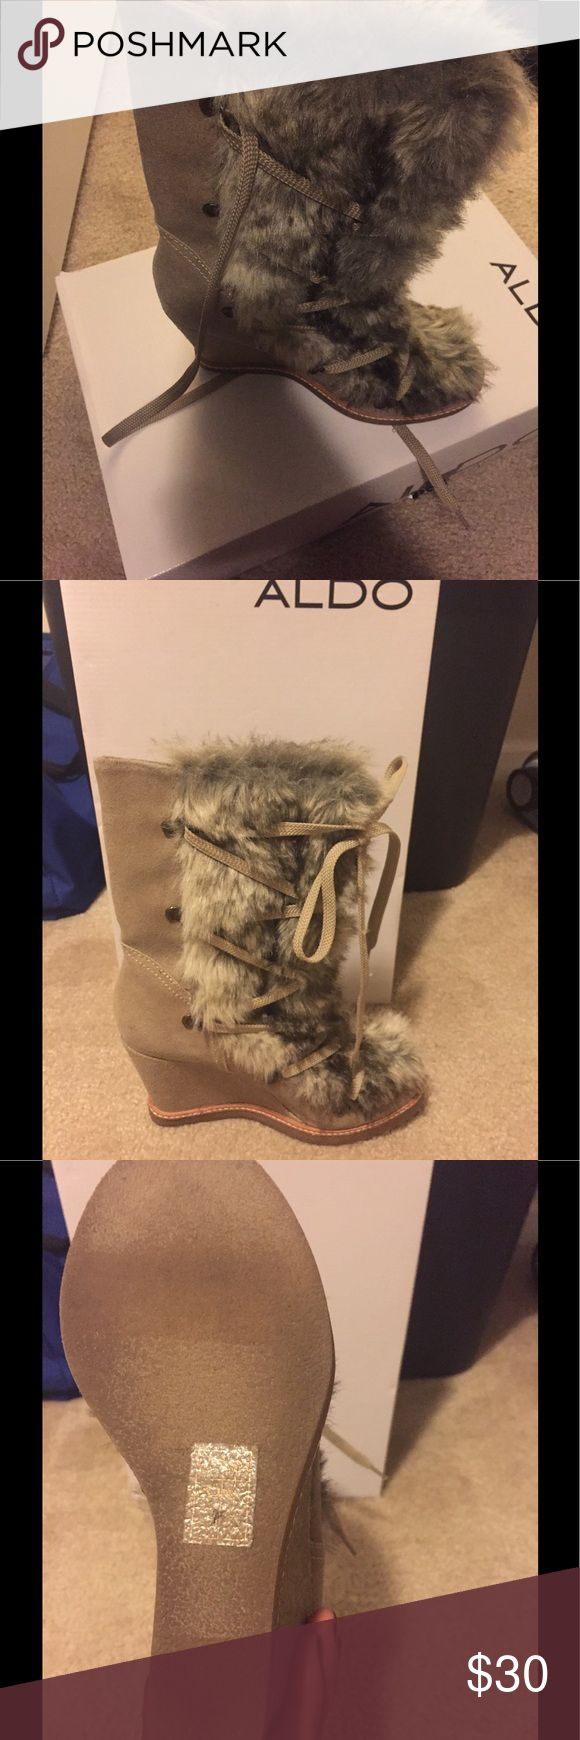 Faux Fur Ankle Boots Suede tie up ankle boots with faux fur. Size 7.5...Gently used!!! Aldo Shoes Ankle Boots & Booties